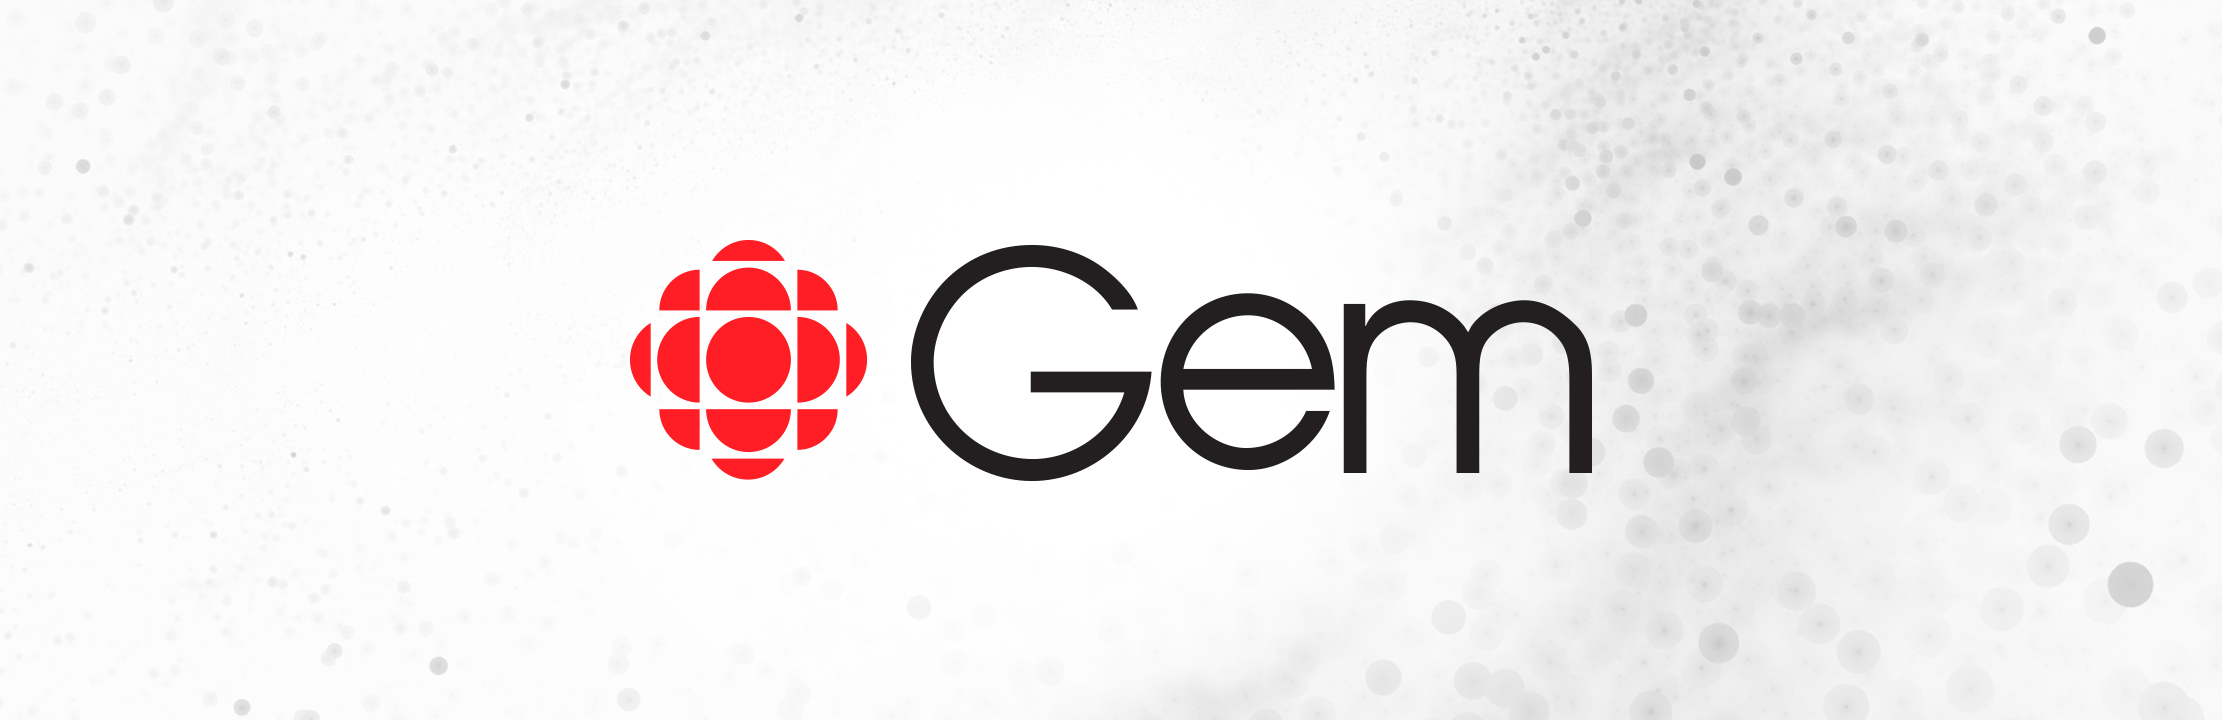 CBC launches new slate of programming for young adults on